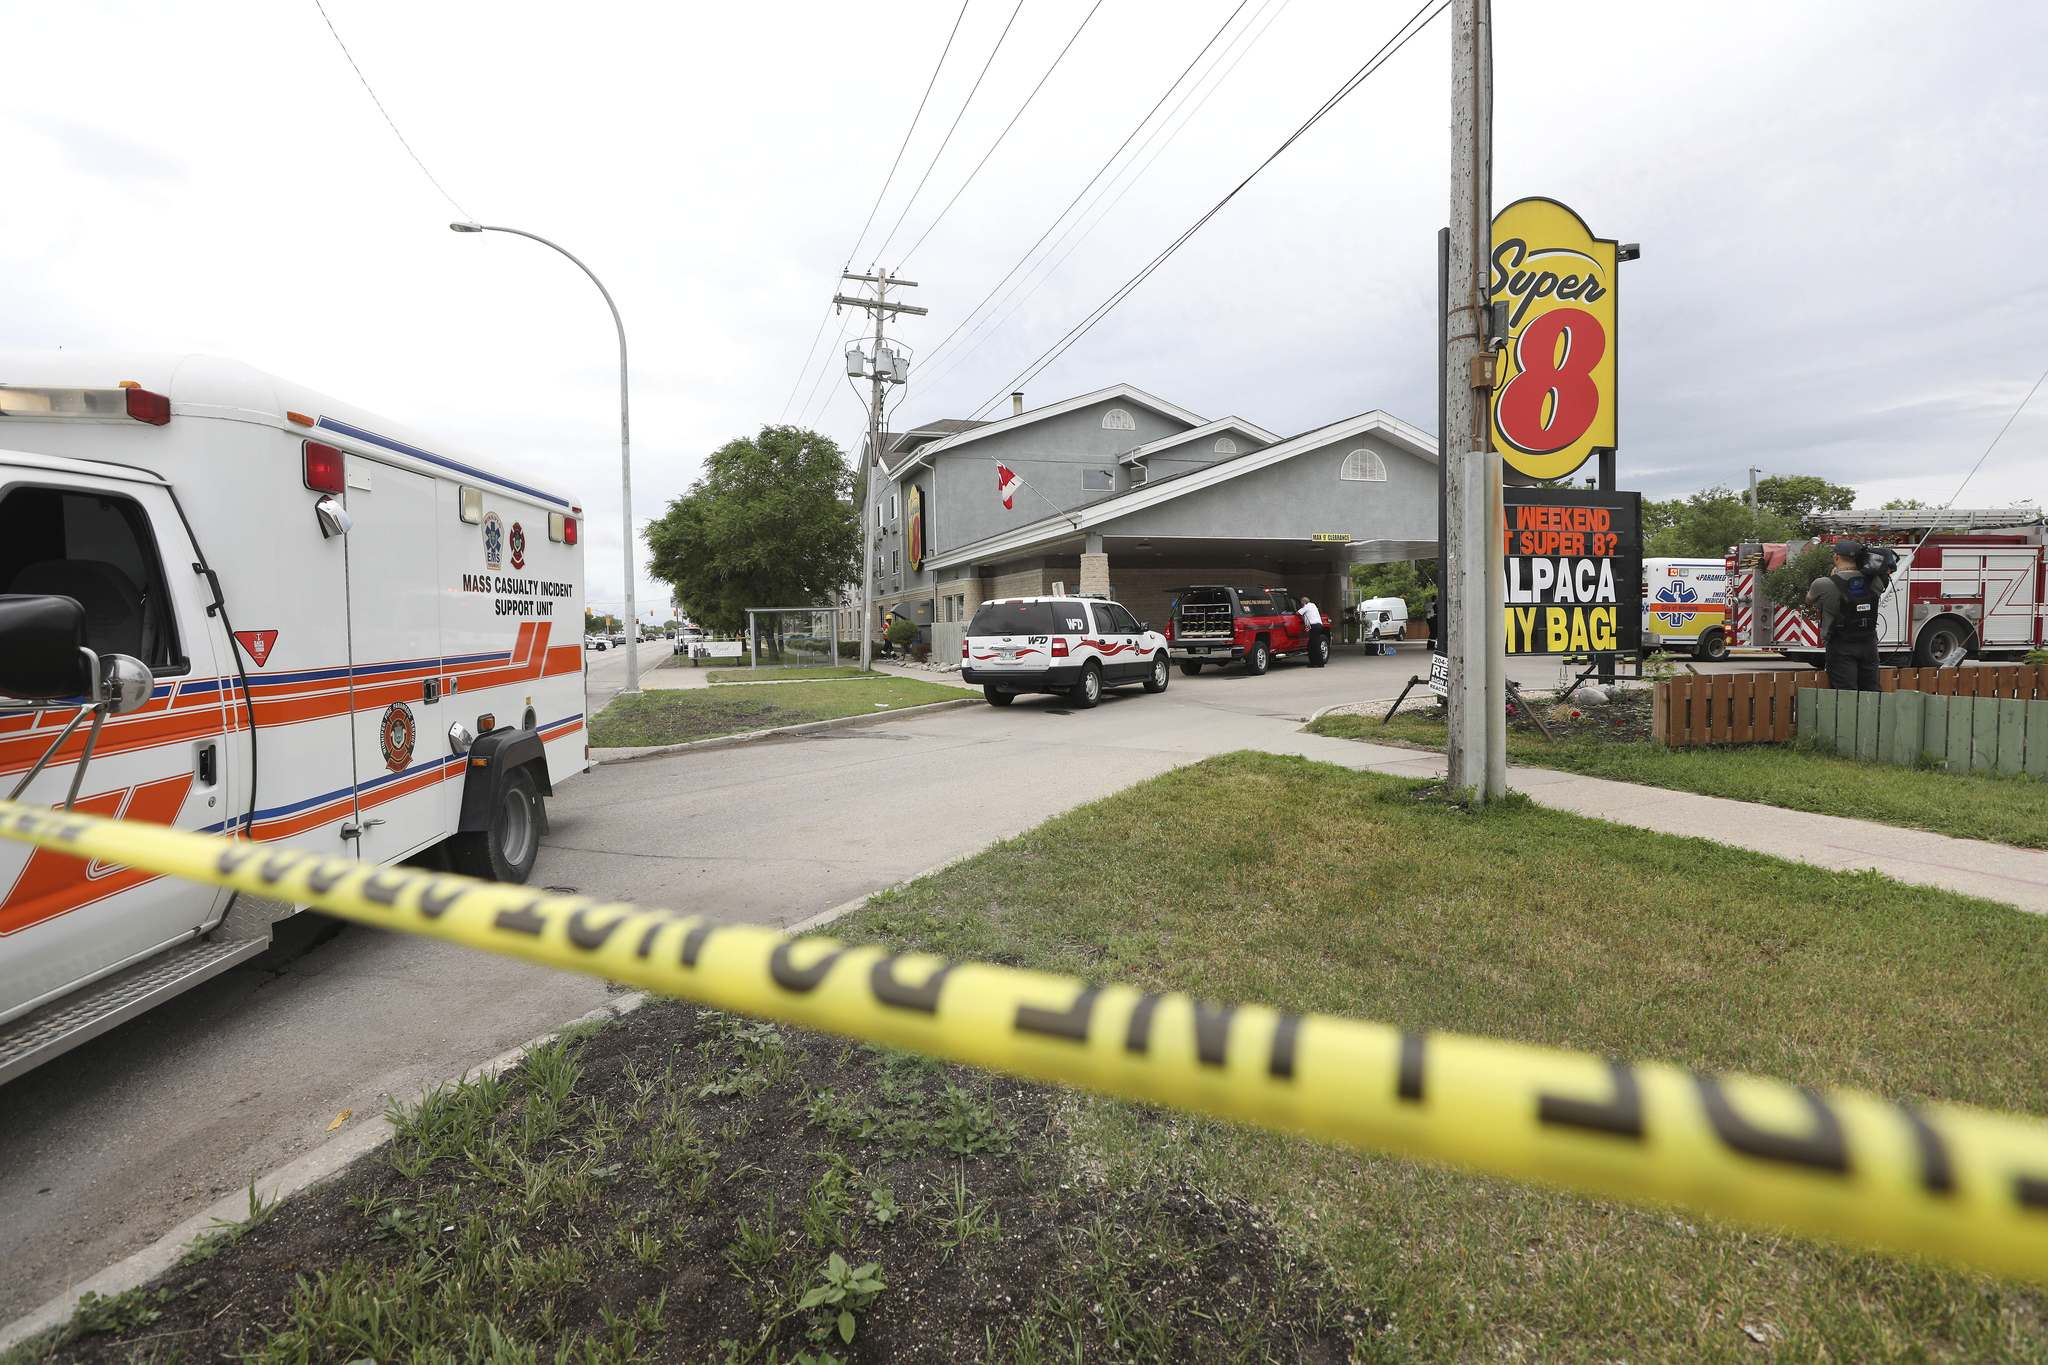 On July 9, the hotel was evacuated and more than 40 people sent to hospital after carbon monoxide wasn't properly vented from the building. (Ruth Bonneville / Free Press files)</p></p>